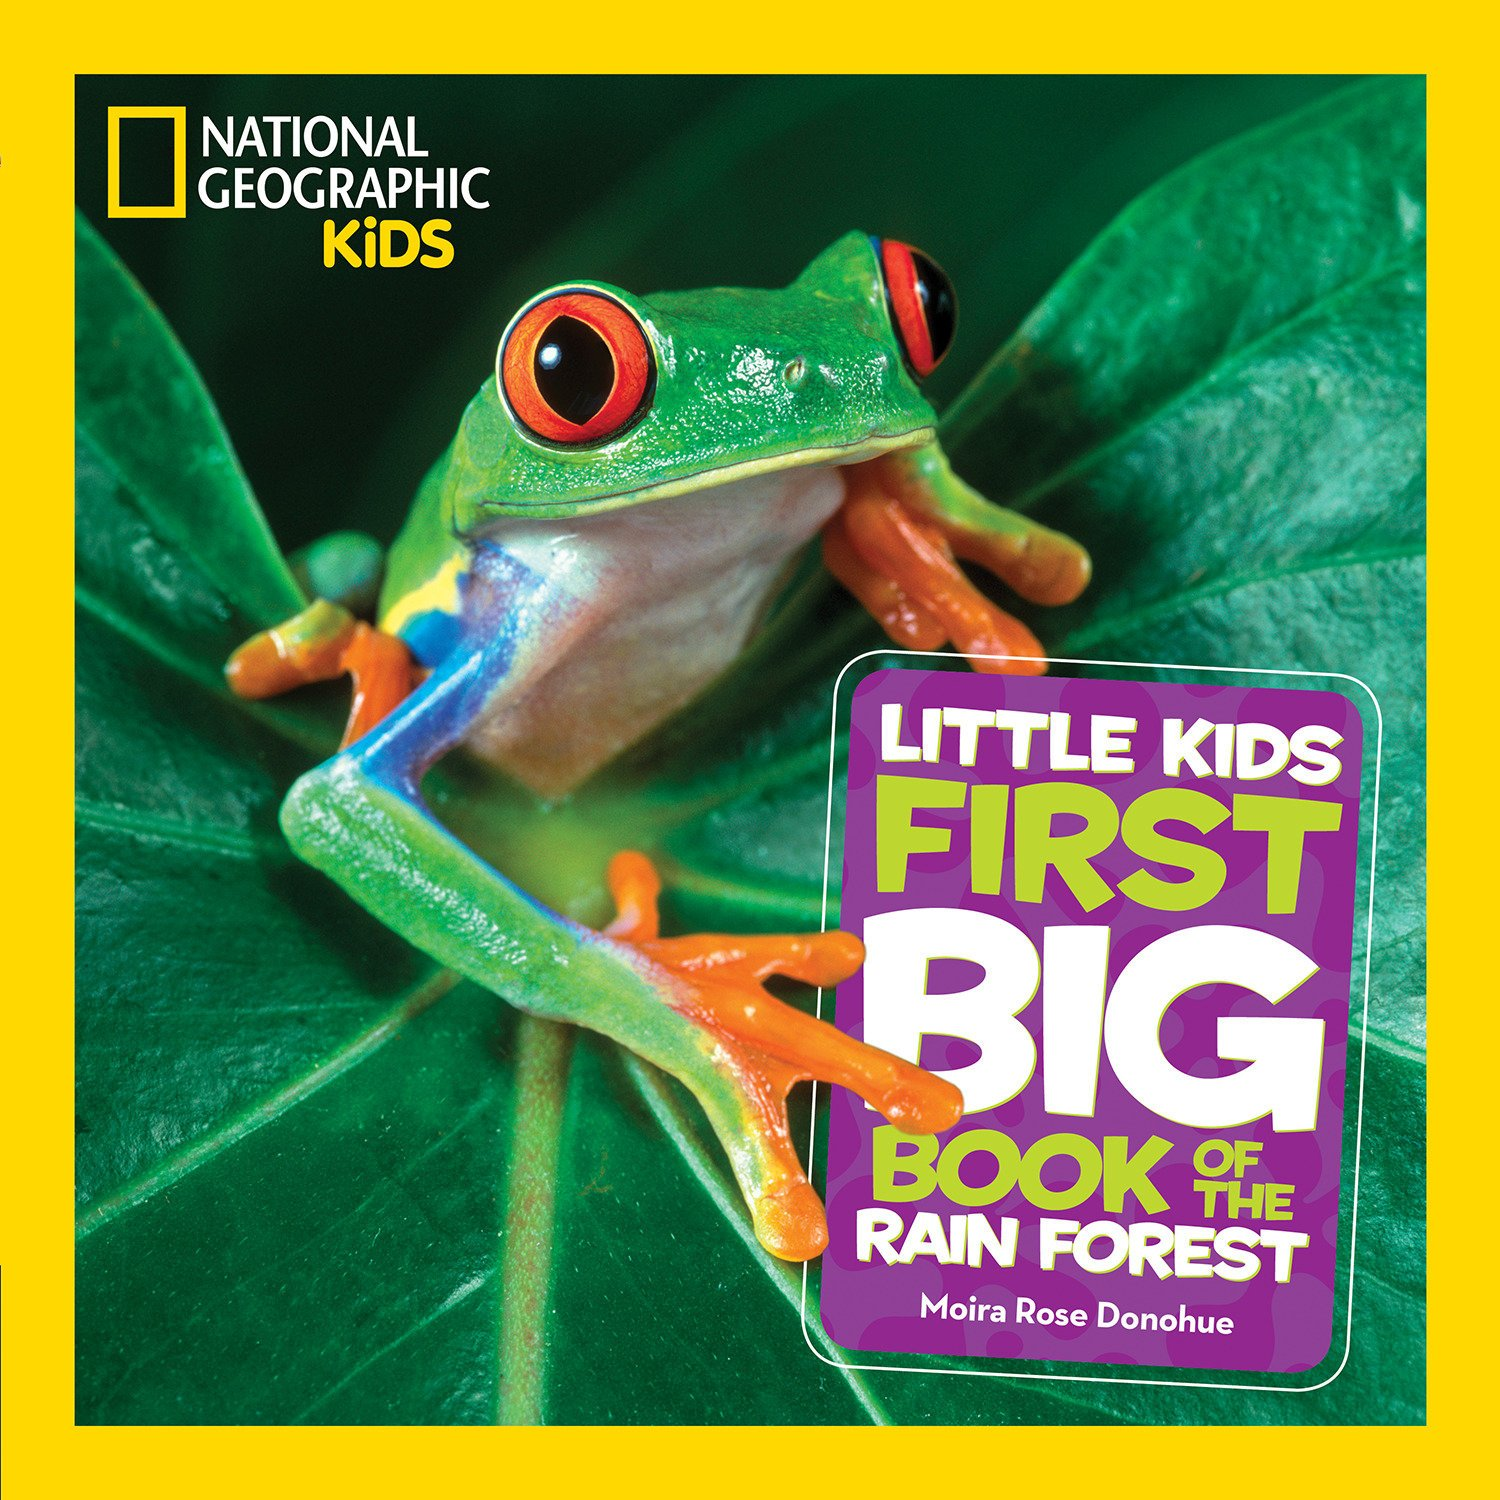 Download National Geographic Little Kids First Big Book of the Rain Forest